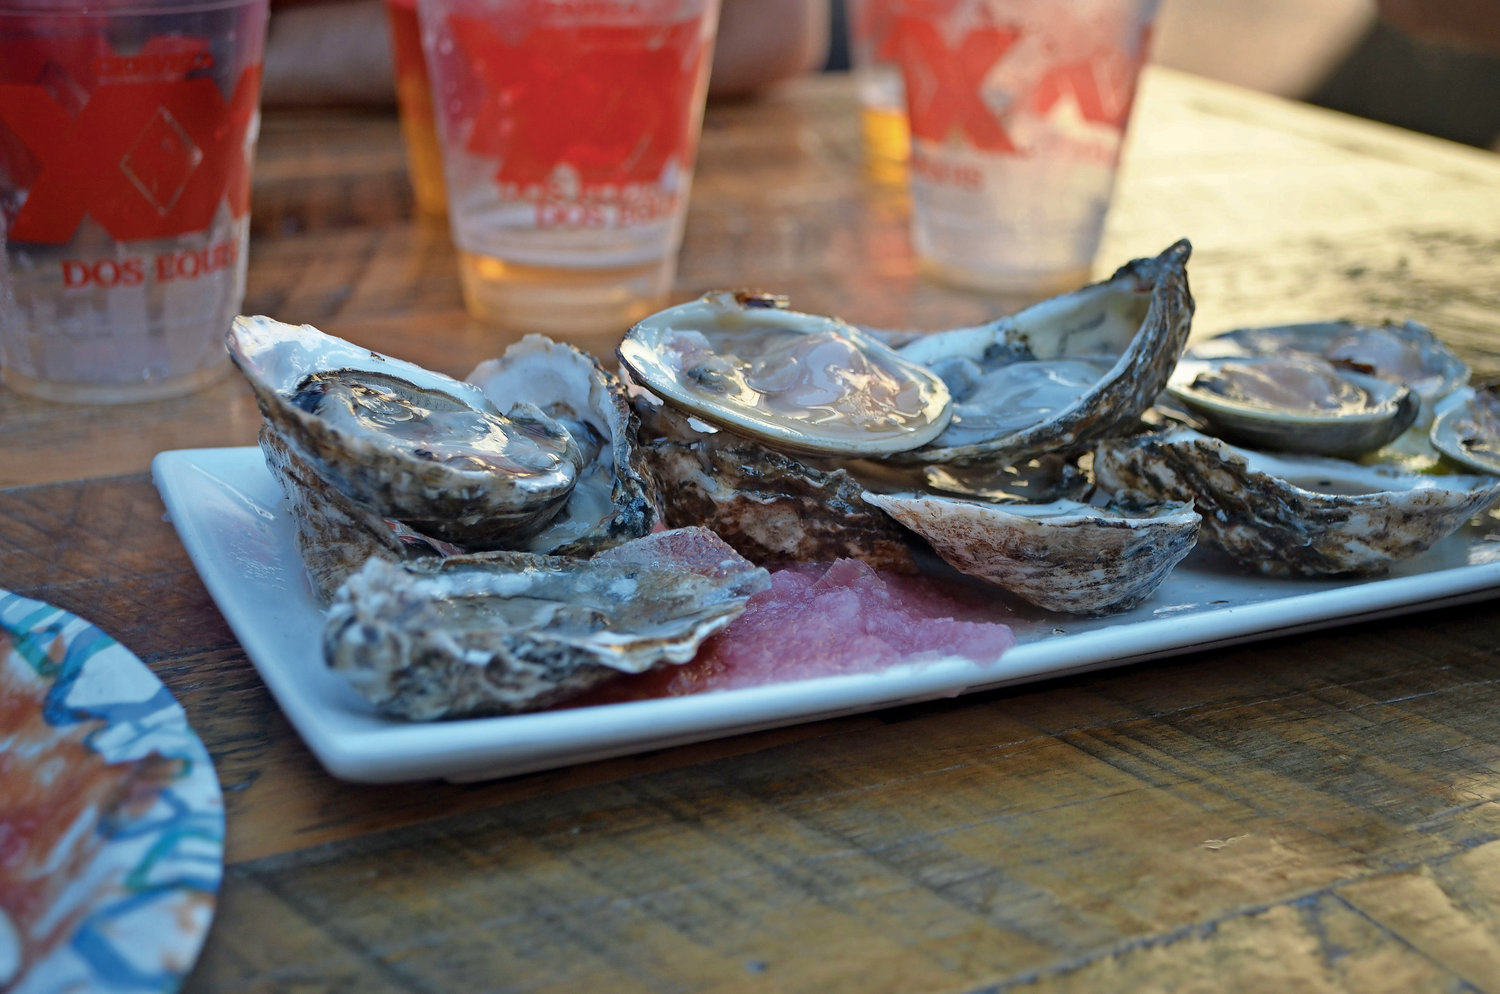 All the oysters featured at the festival will come from local waters, like these mollusks, which came from the Peconic Gold Oysters farm in the Great Peconic Bay and the Lucky 13 farm in the Great South Bay area.